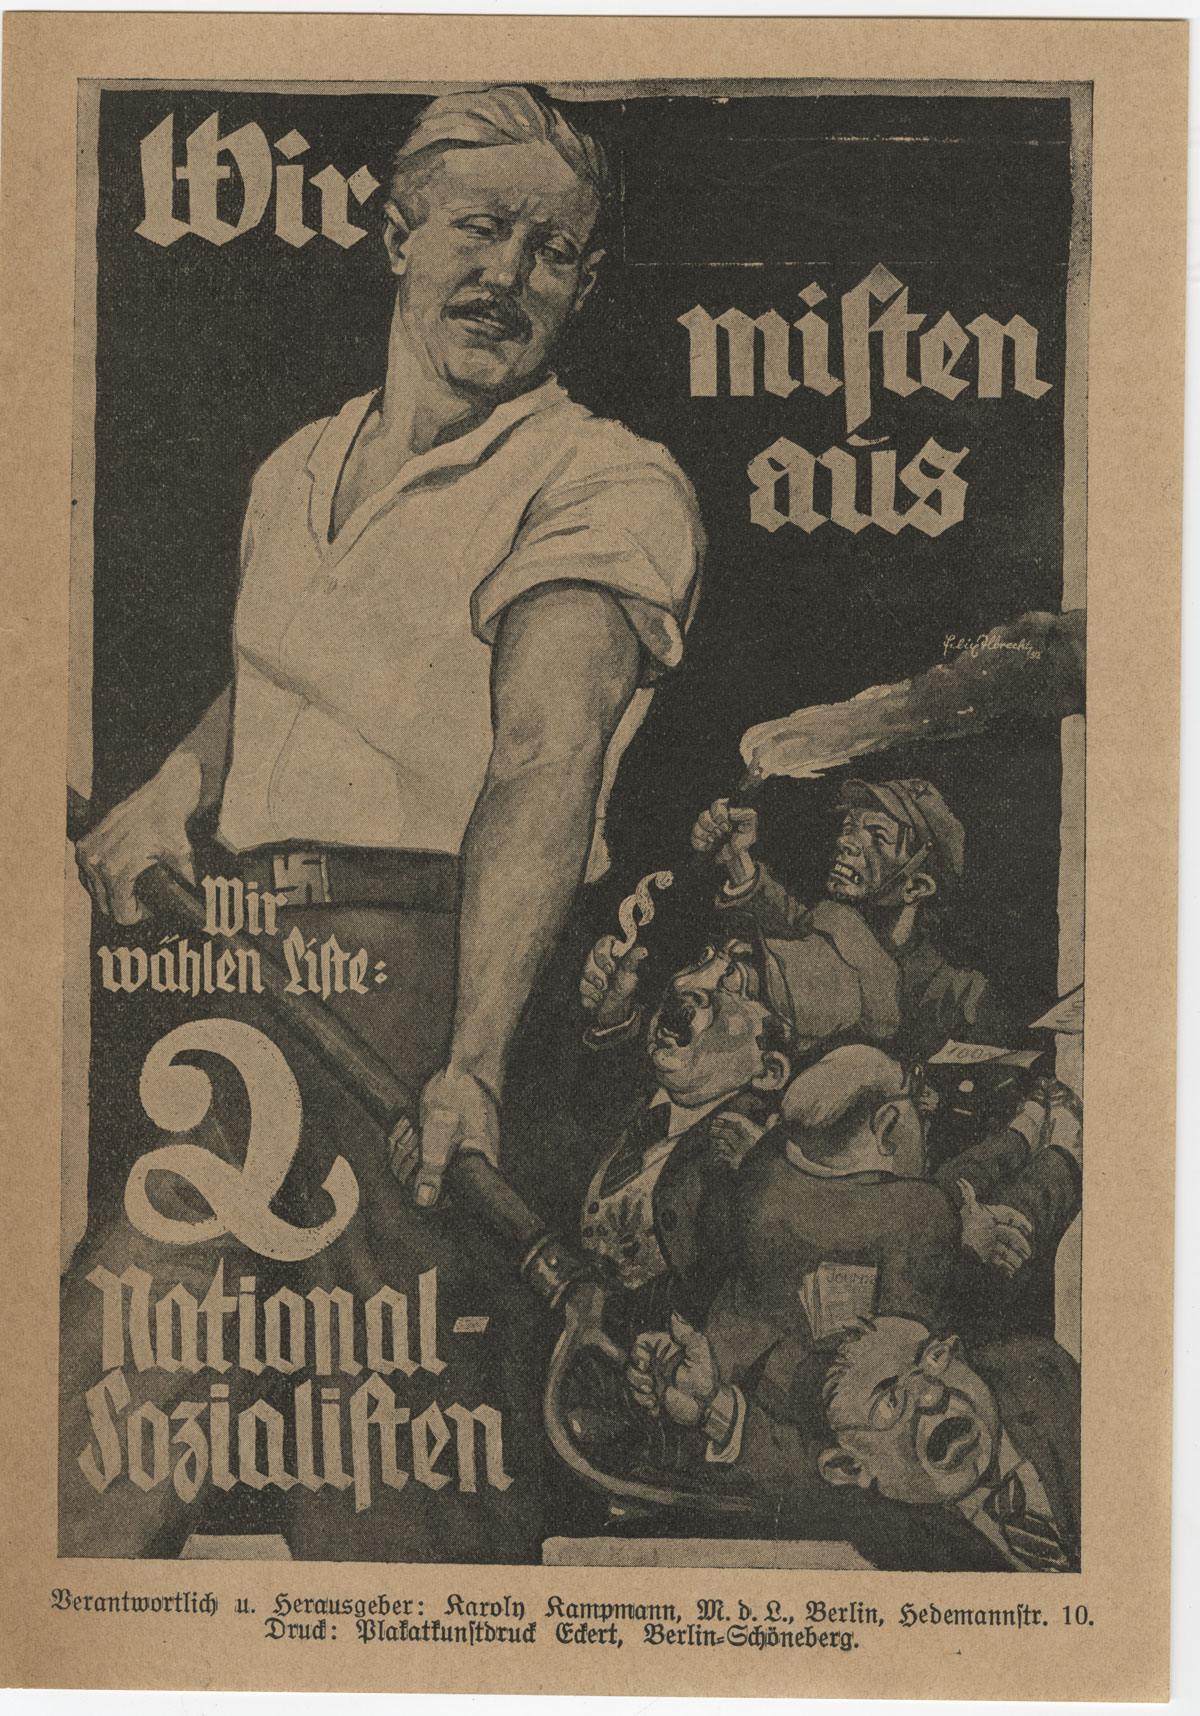 "Nazi Broadside from the 1932 German elections ephemera collection. It reads, ""We're cleaning the stable [manure]."" 23x16 cm."